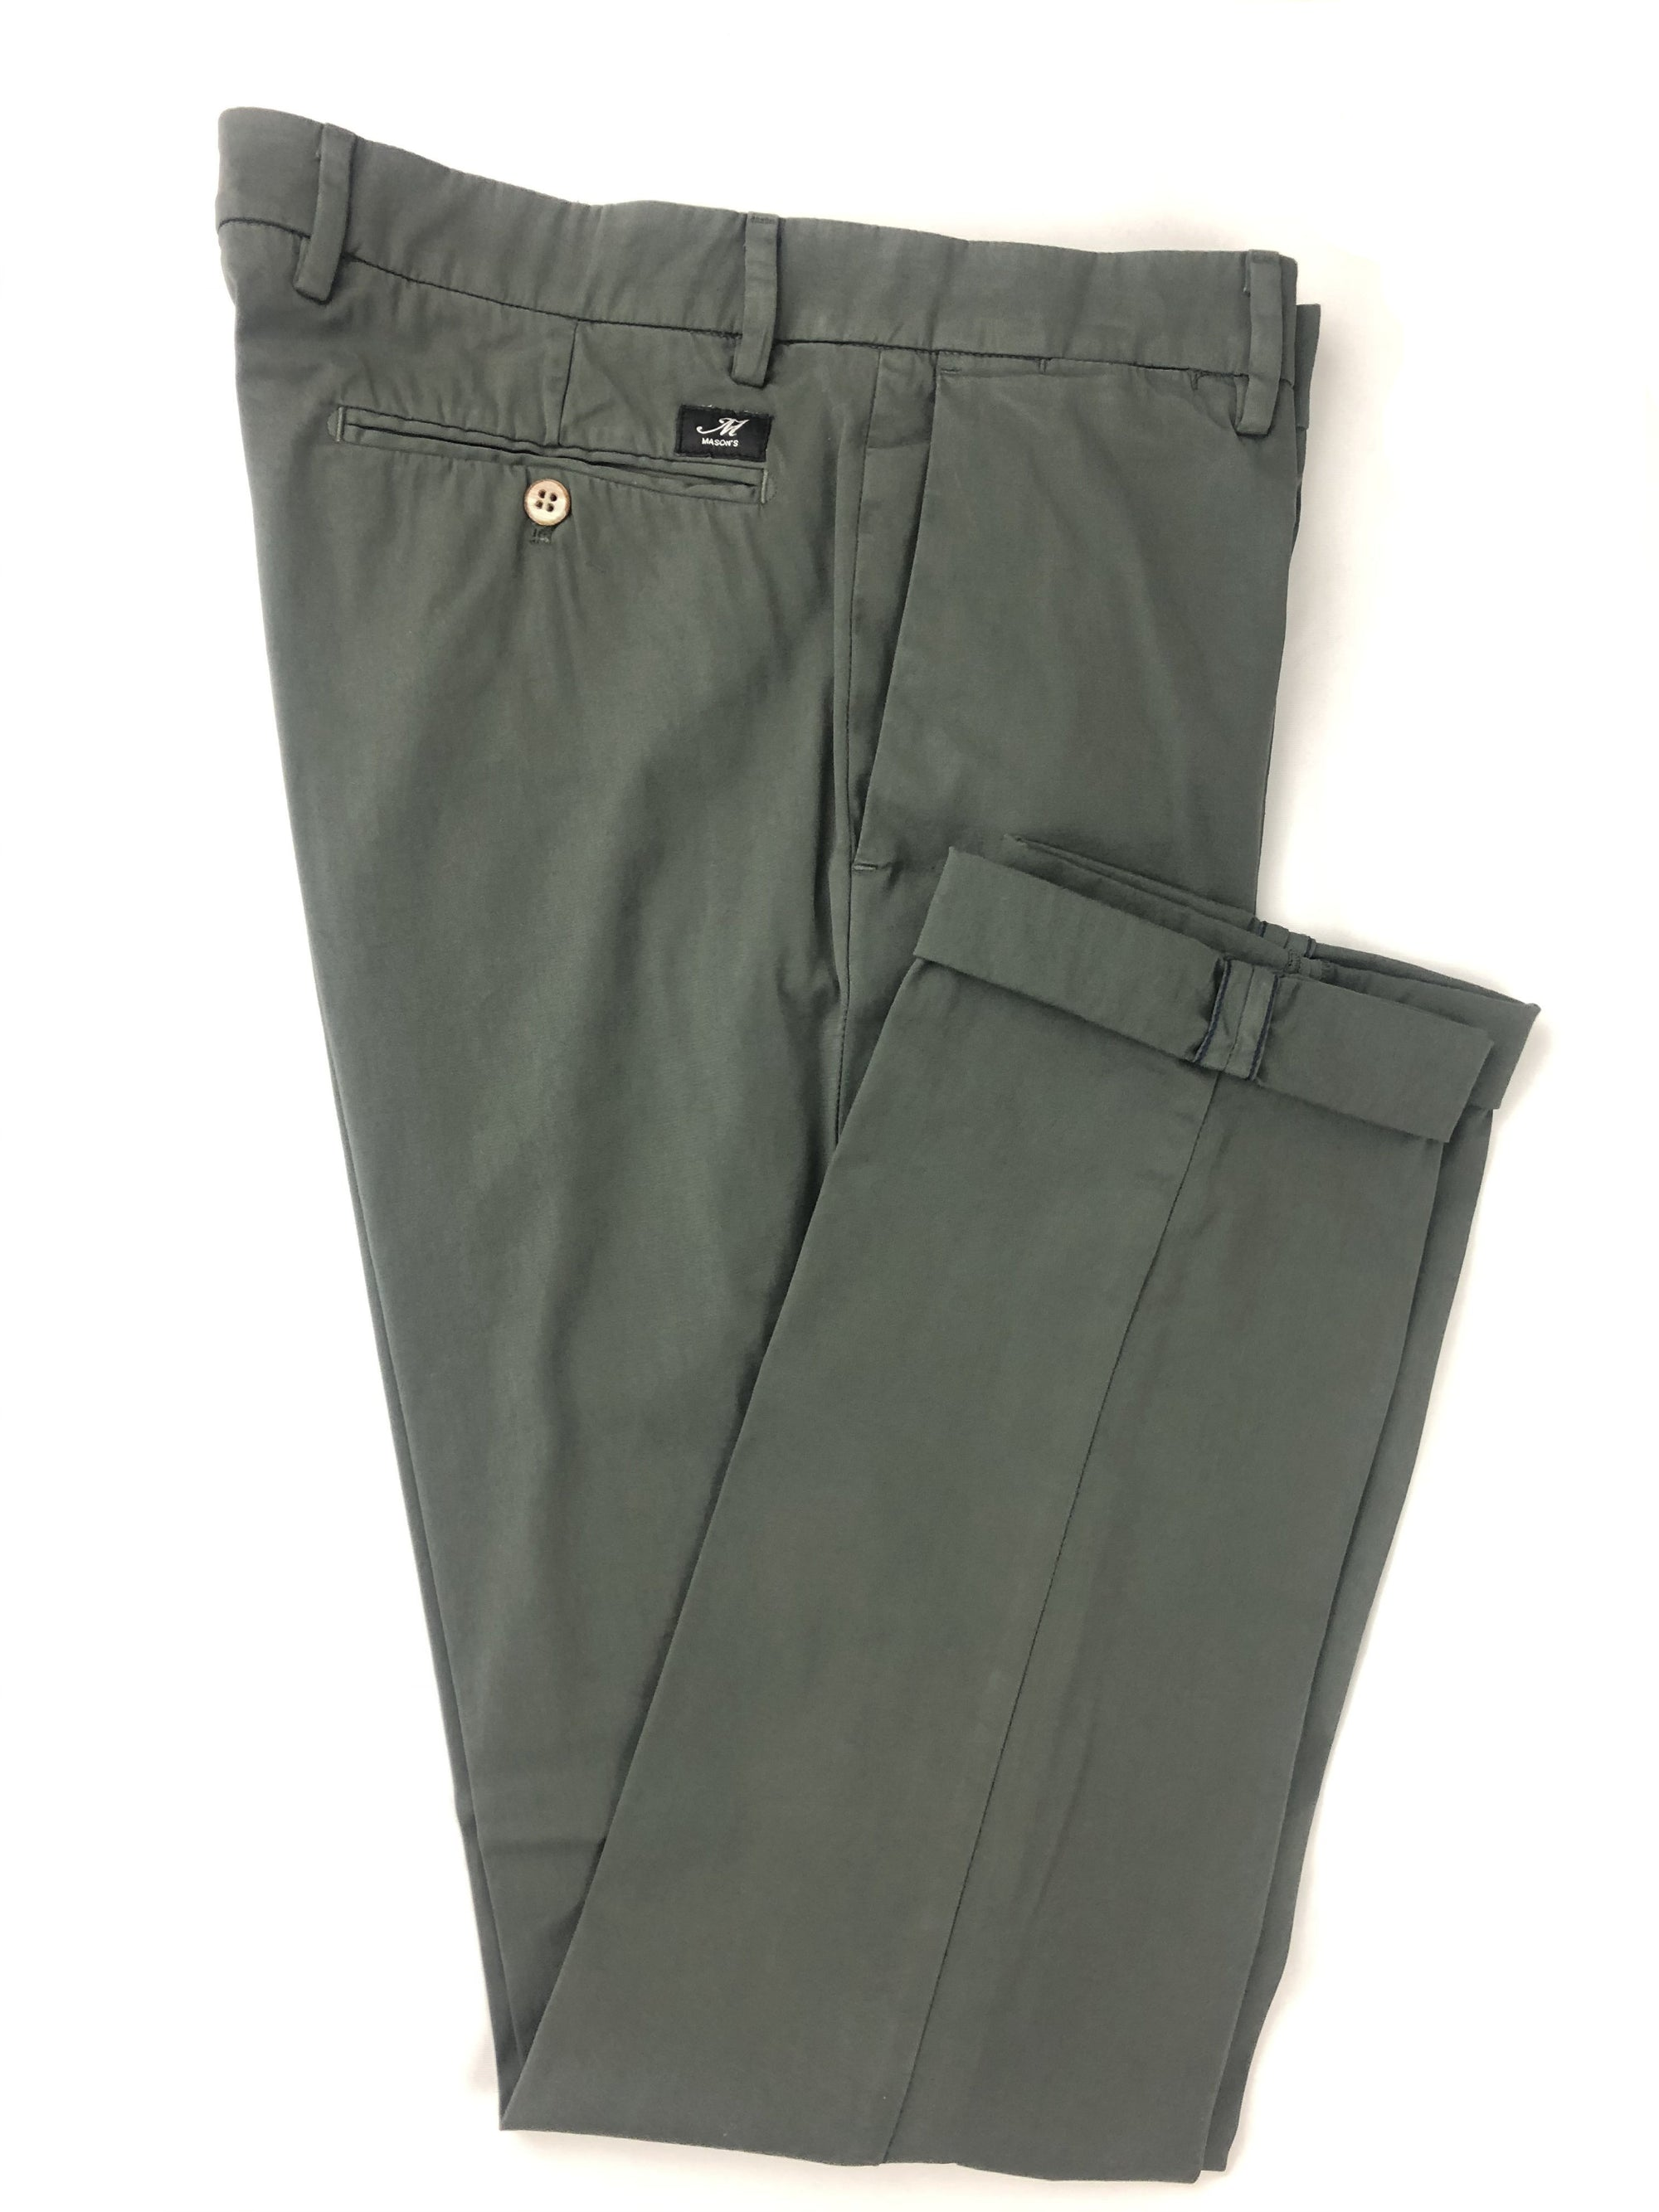 MASON'S MEN'S CHINO PANTS - DARK OLIVE